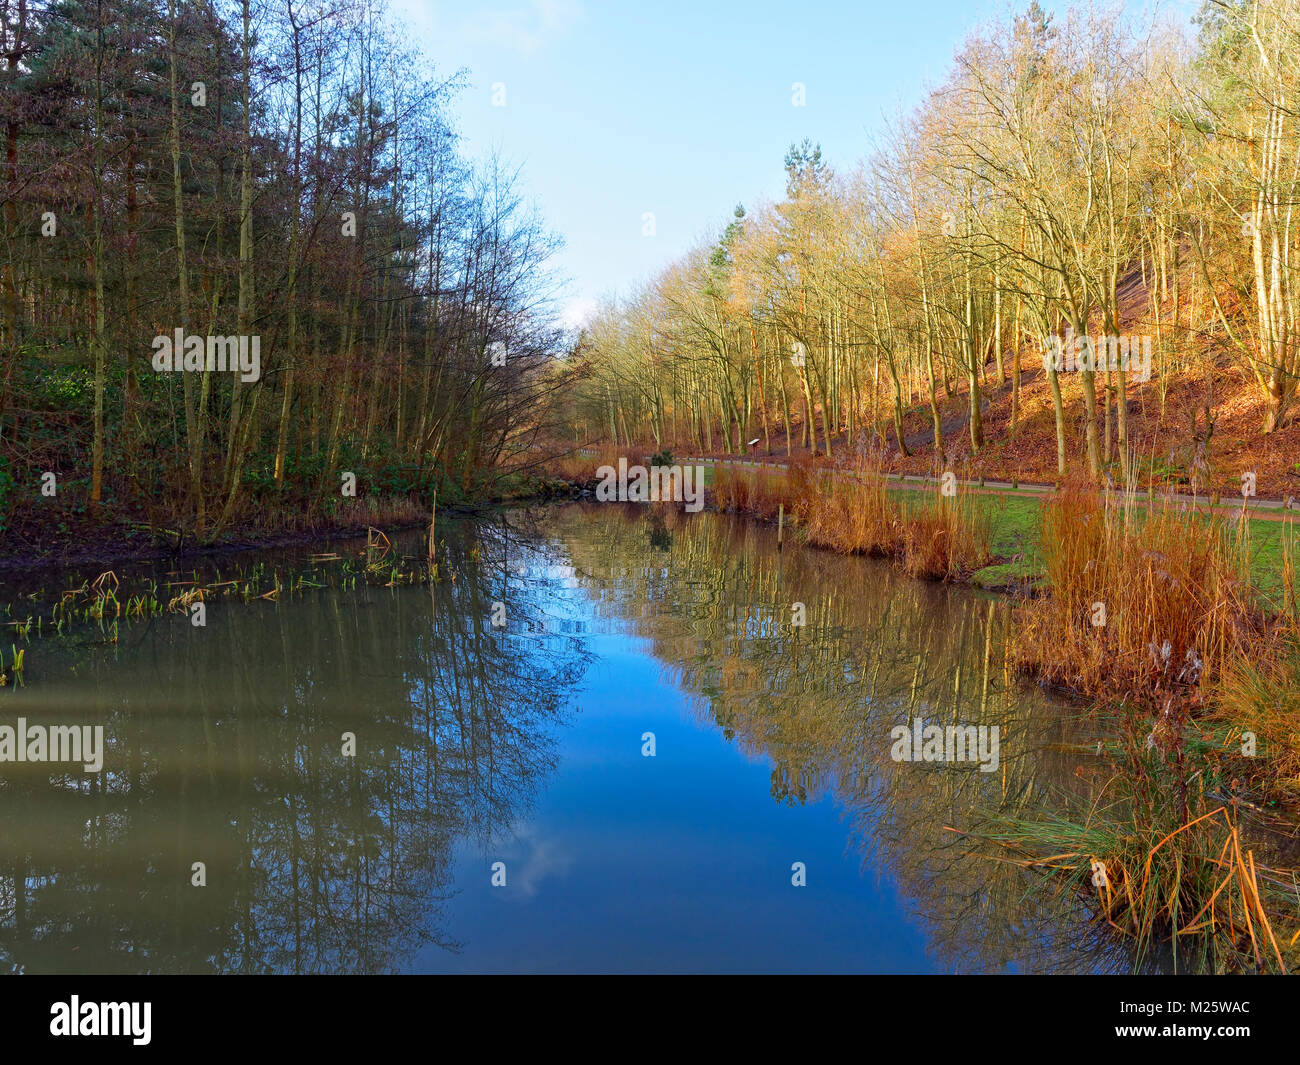 A clear, bright winters day. A small pond, with reeds growing at the waters edge, reflects the winter sky and the Stock Photo